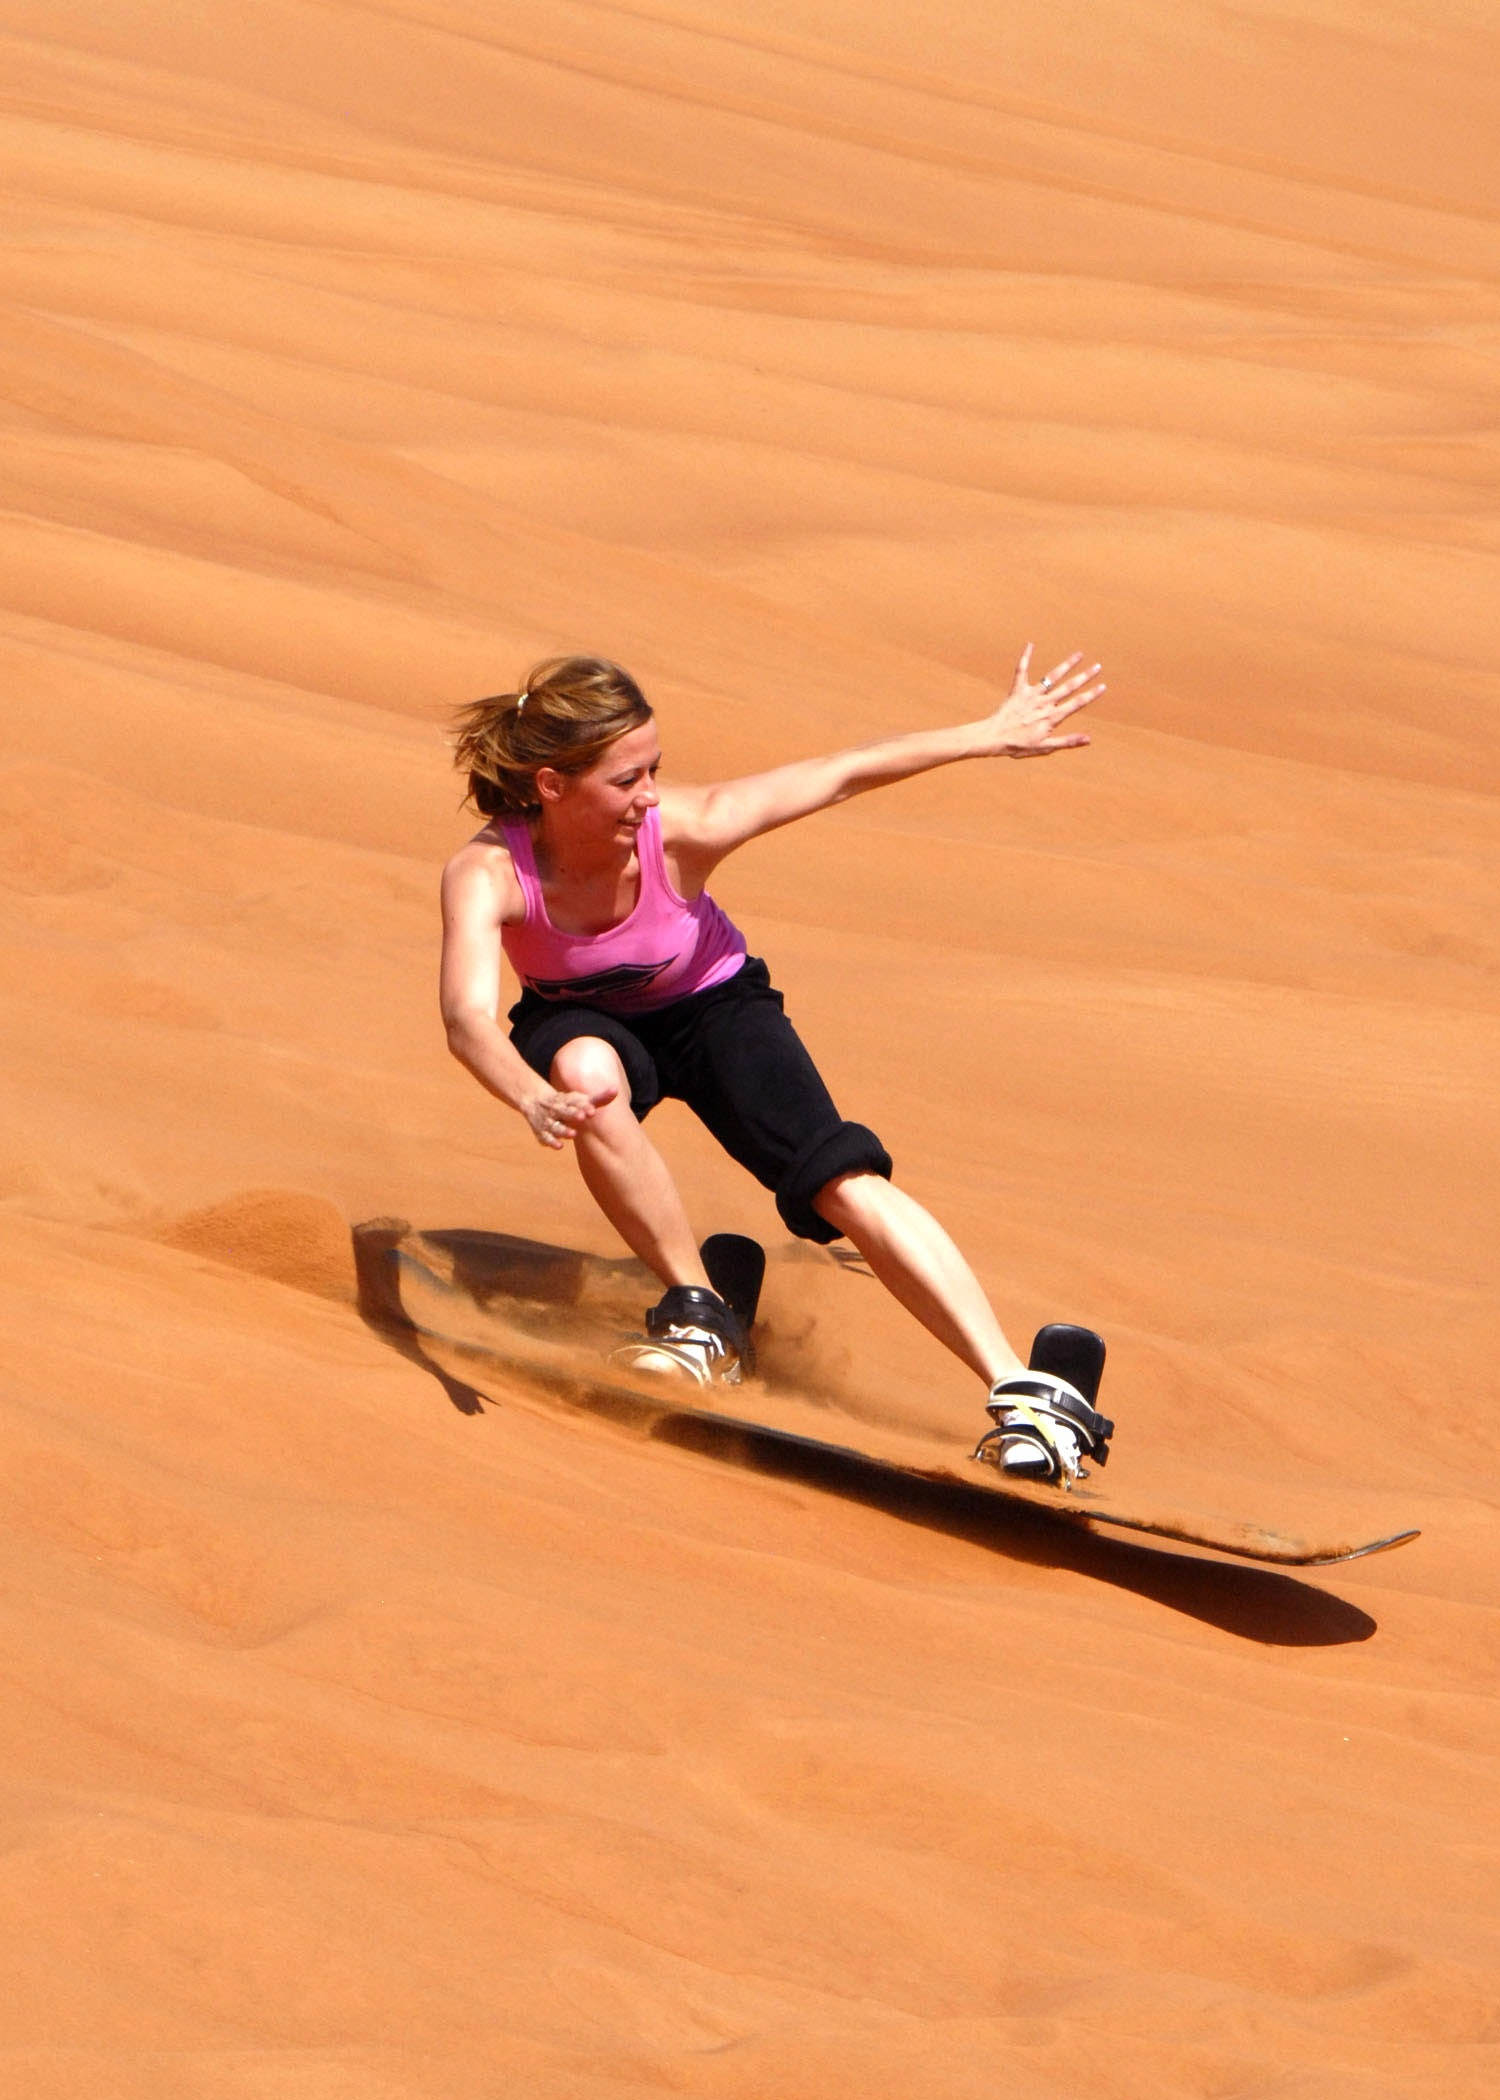 Woman in doing sun boarding during daytime photo